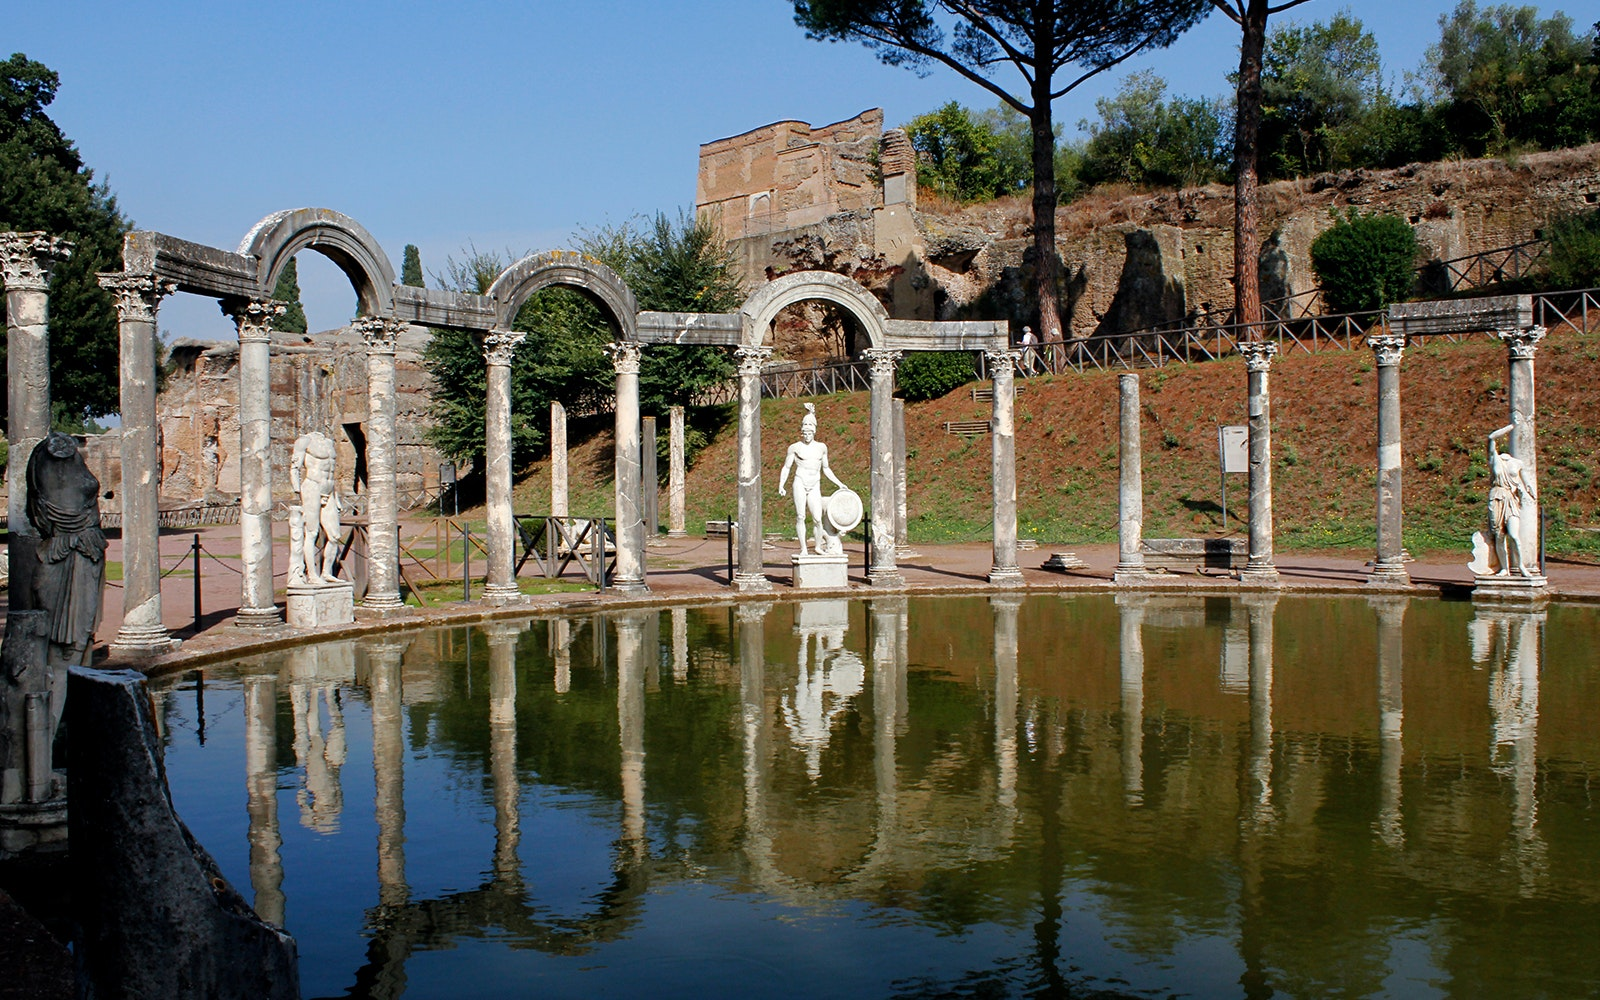 Villa Deste. Excellent Villa Dueste Tivoli Italy Europe Art Artwork ...